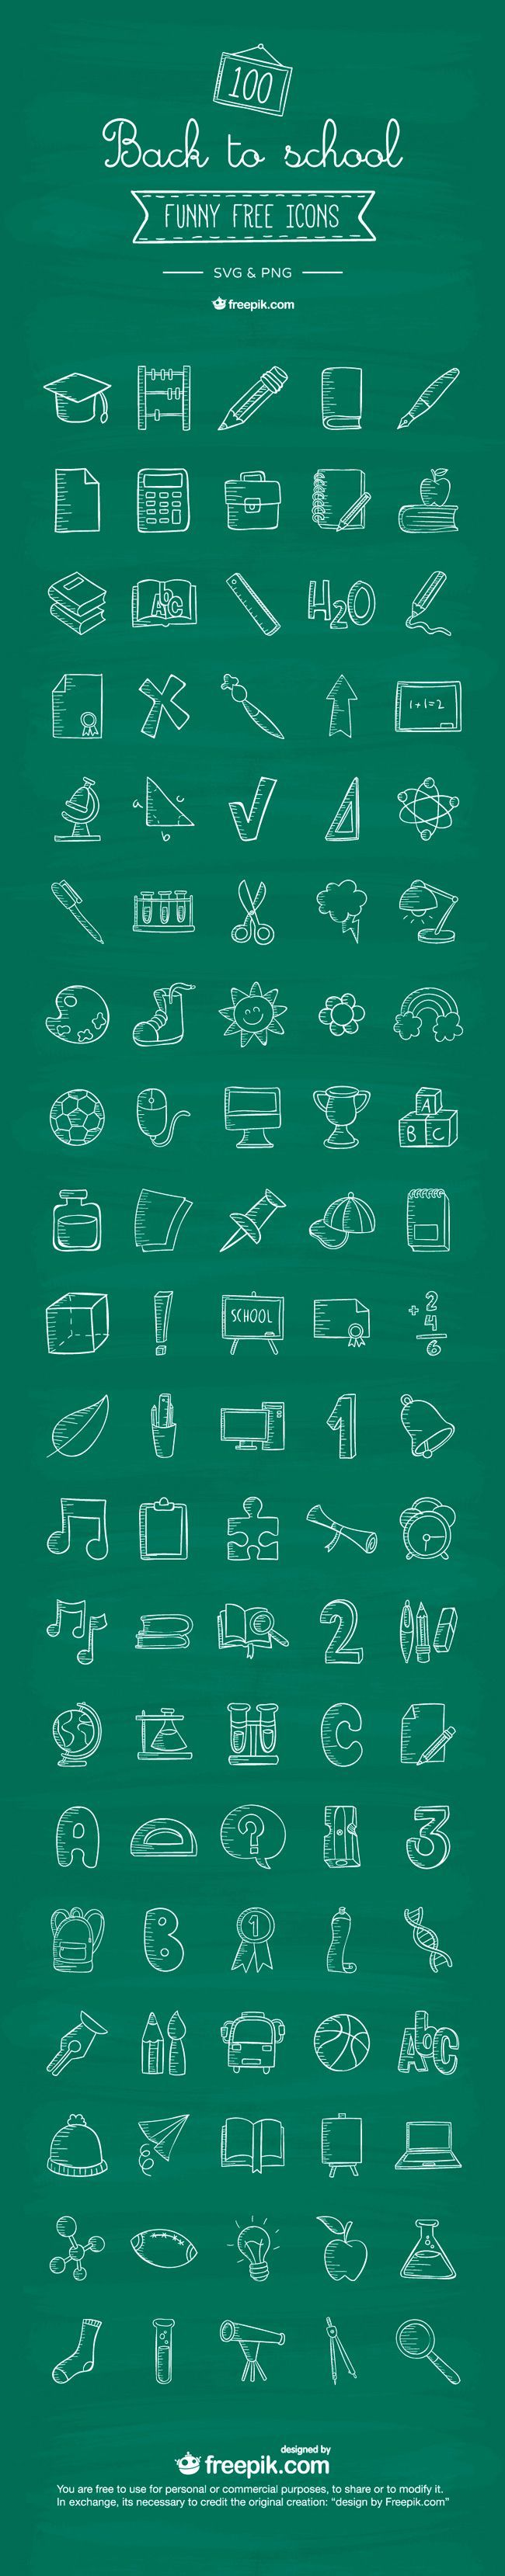 Free Download 100 Back To School Icons School icon